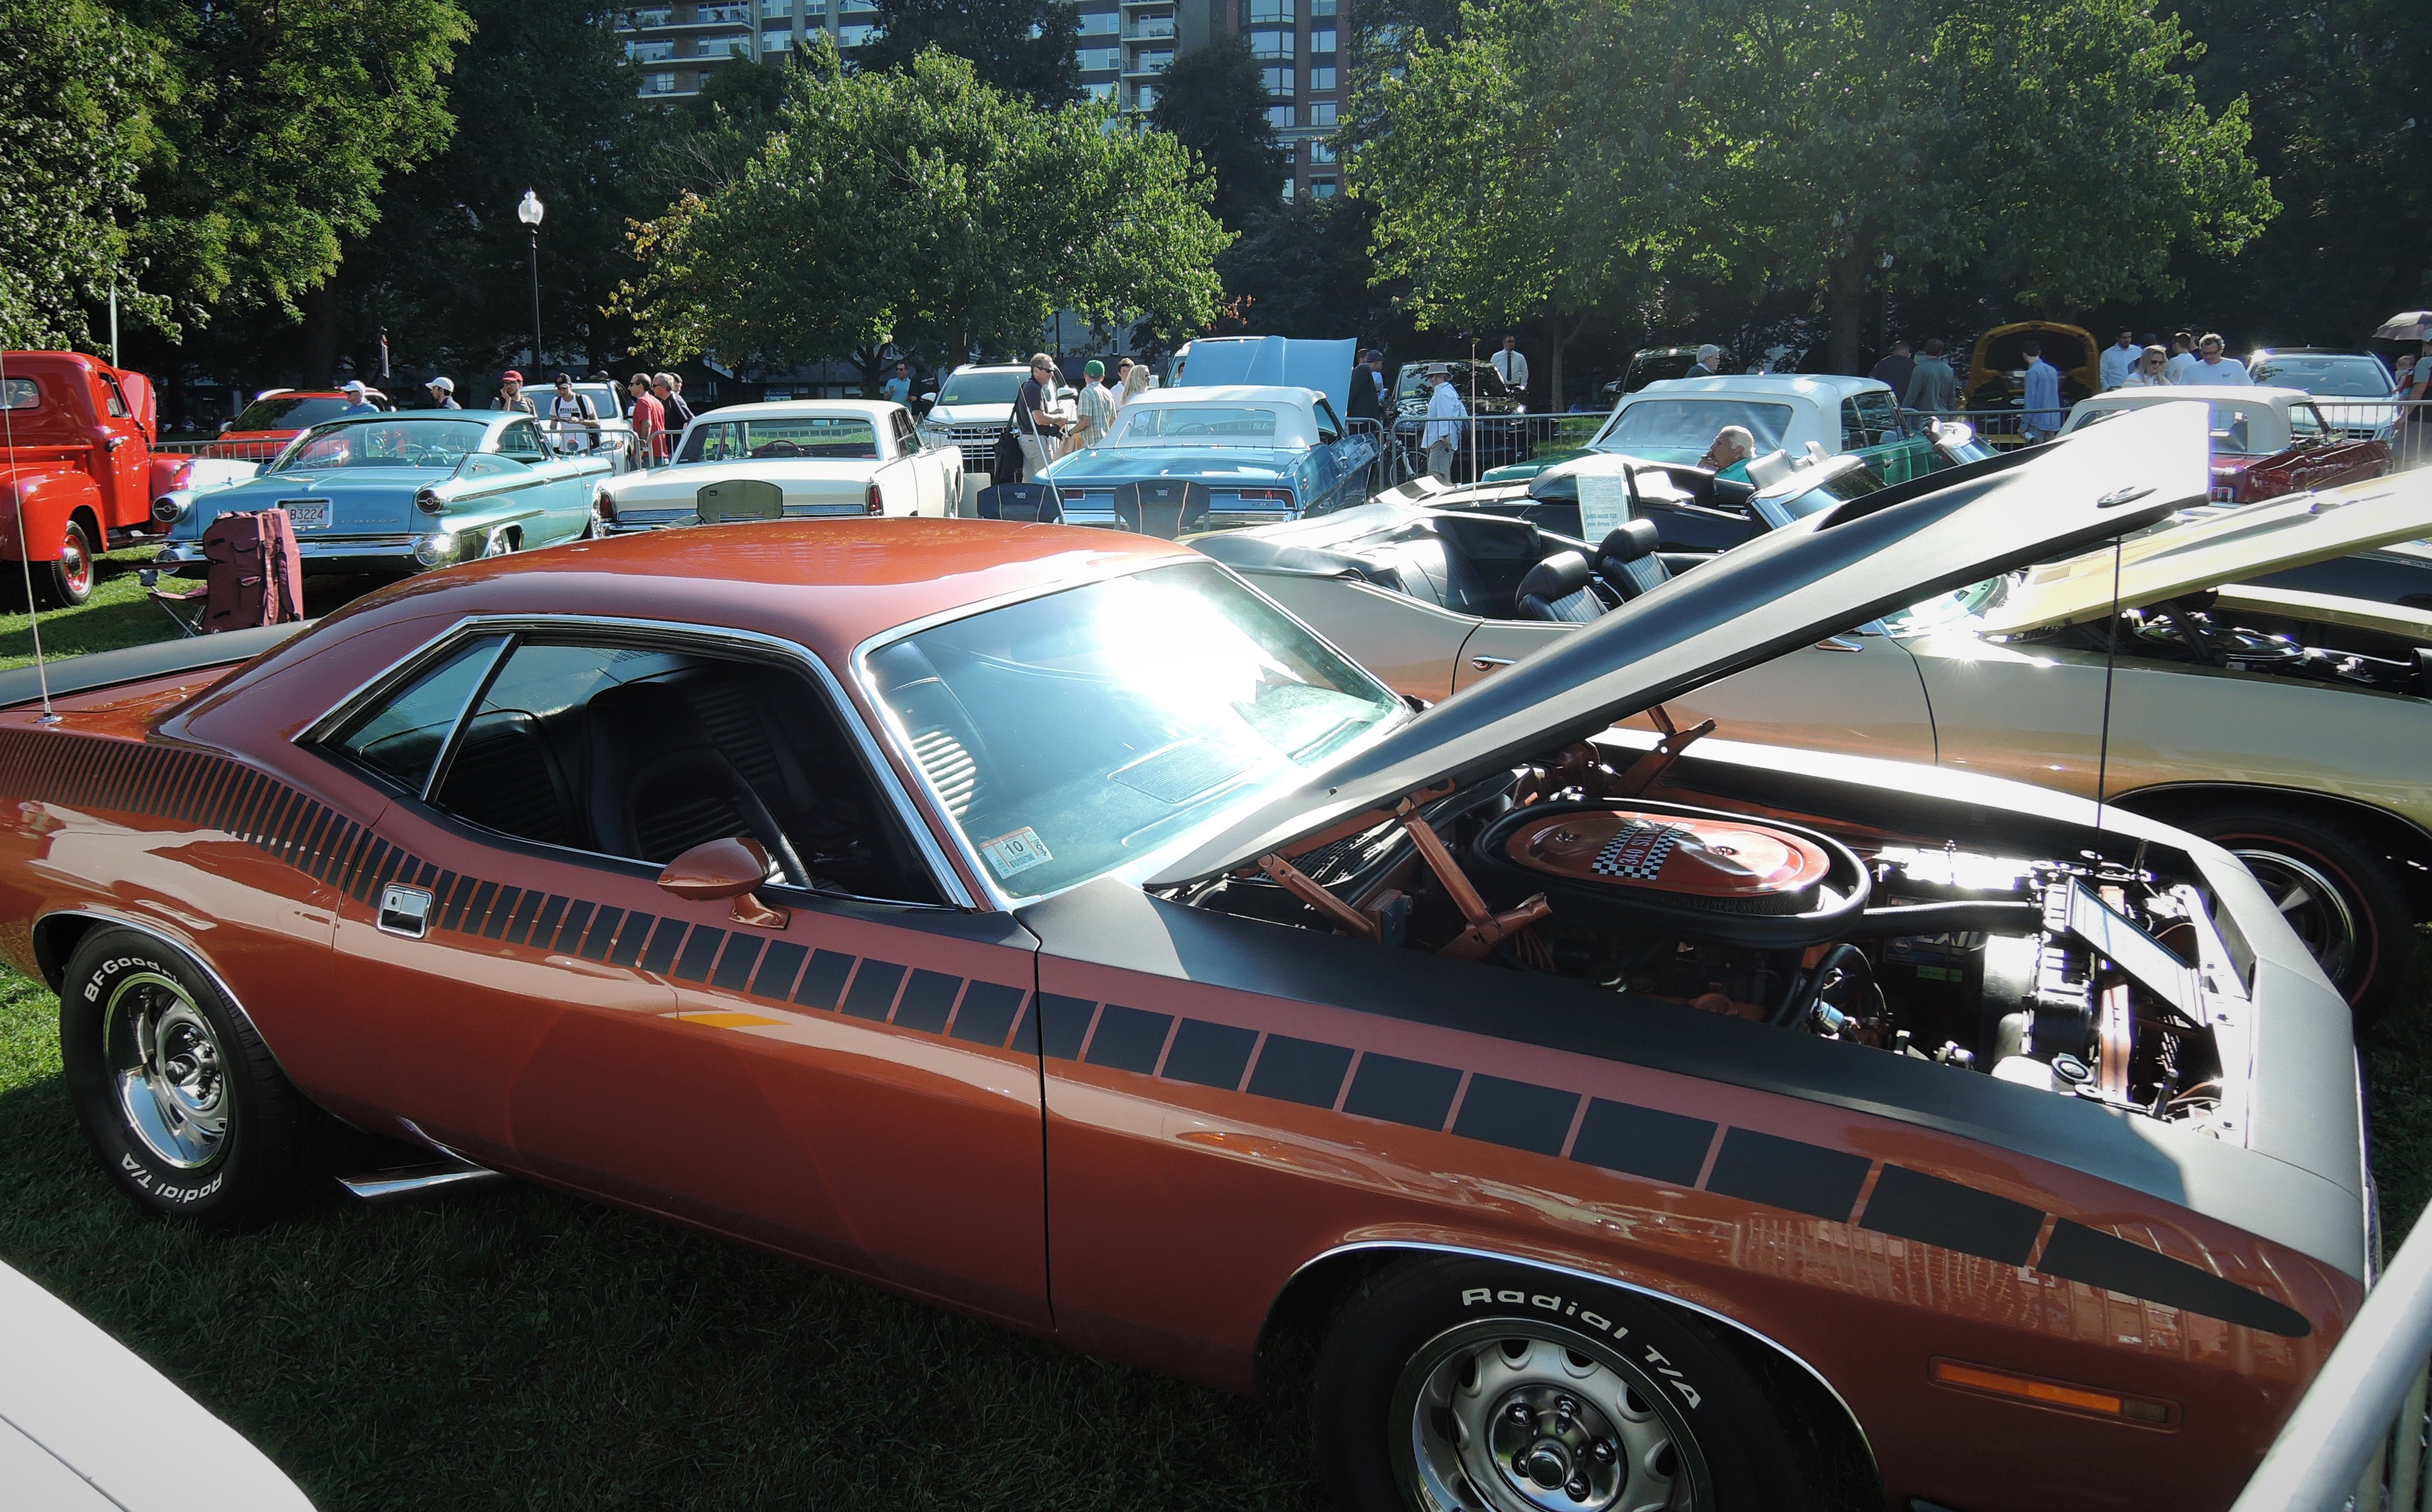 copper 1970 Plymouth AAR Cuda - The Boston Cup 2017